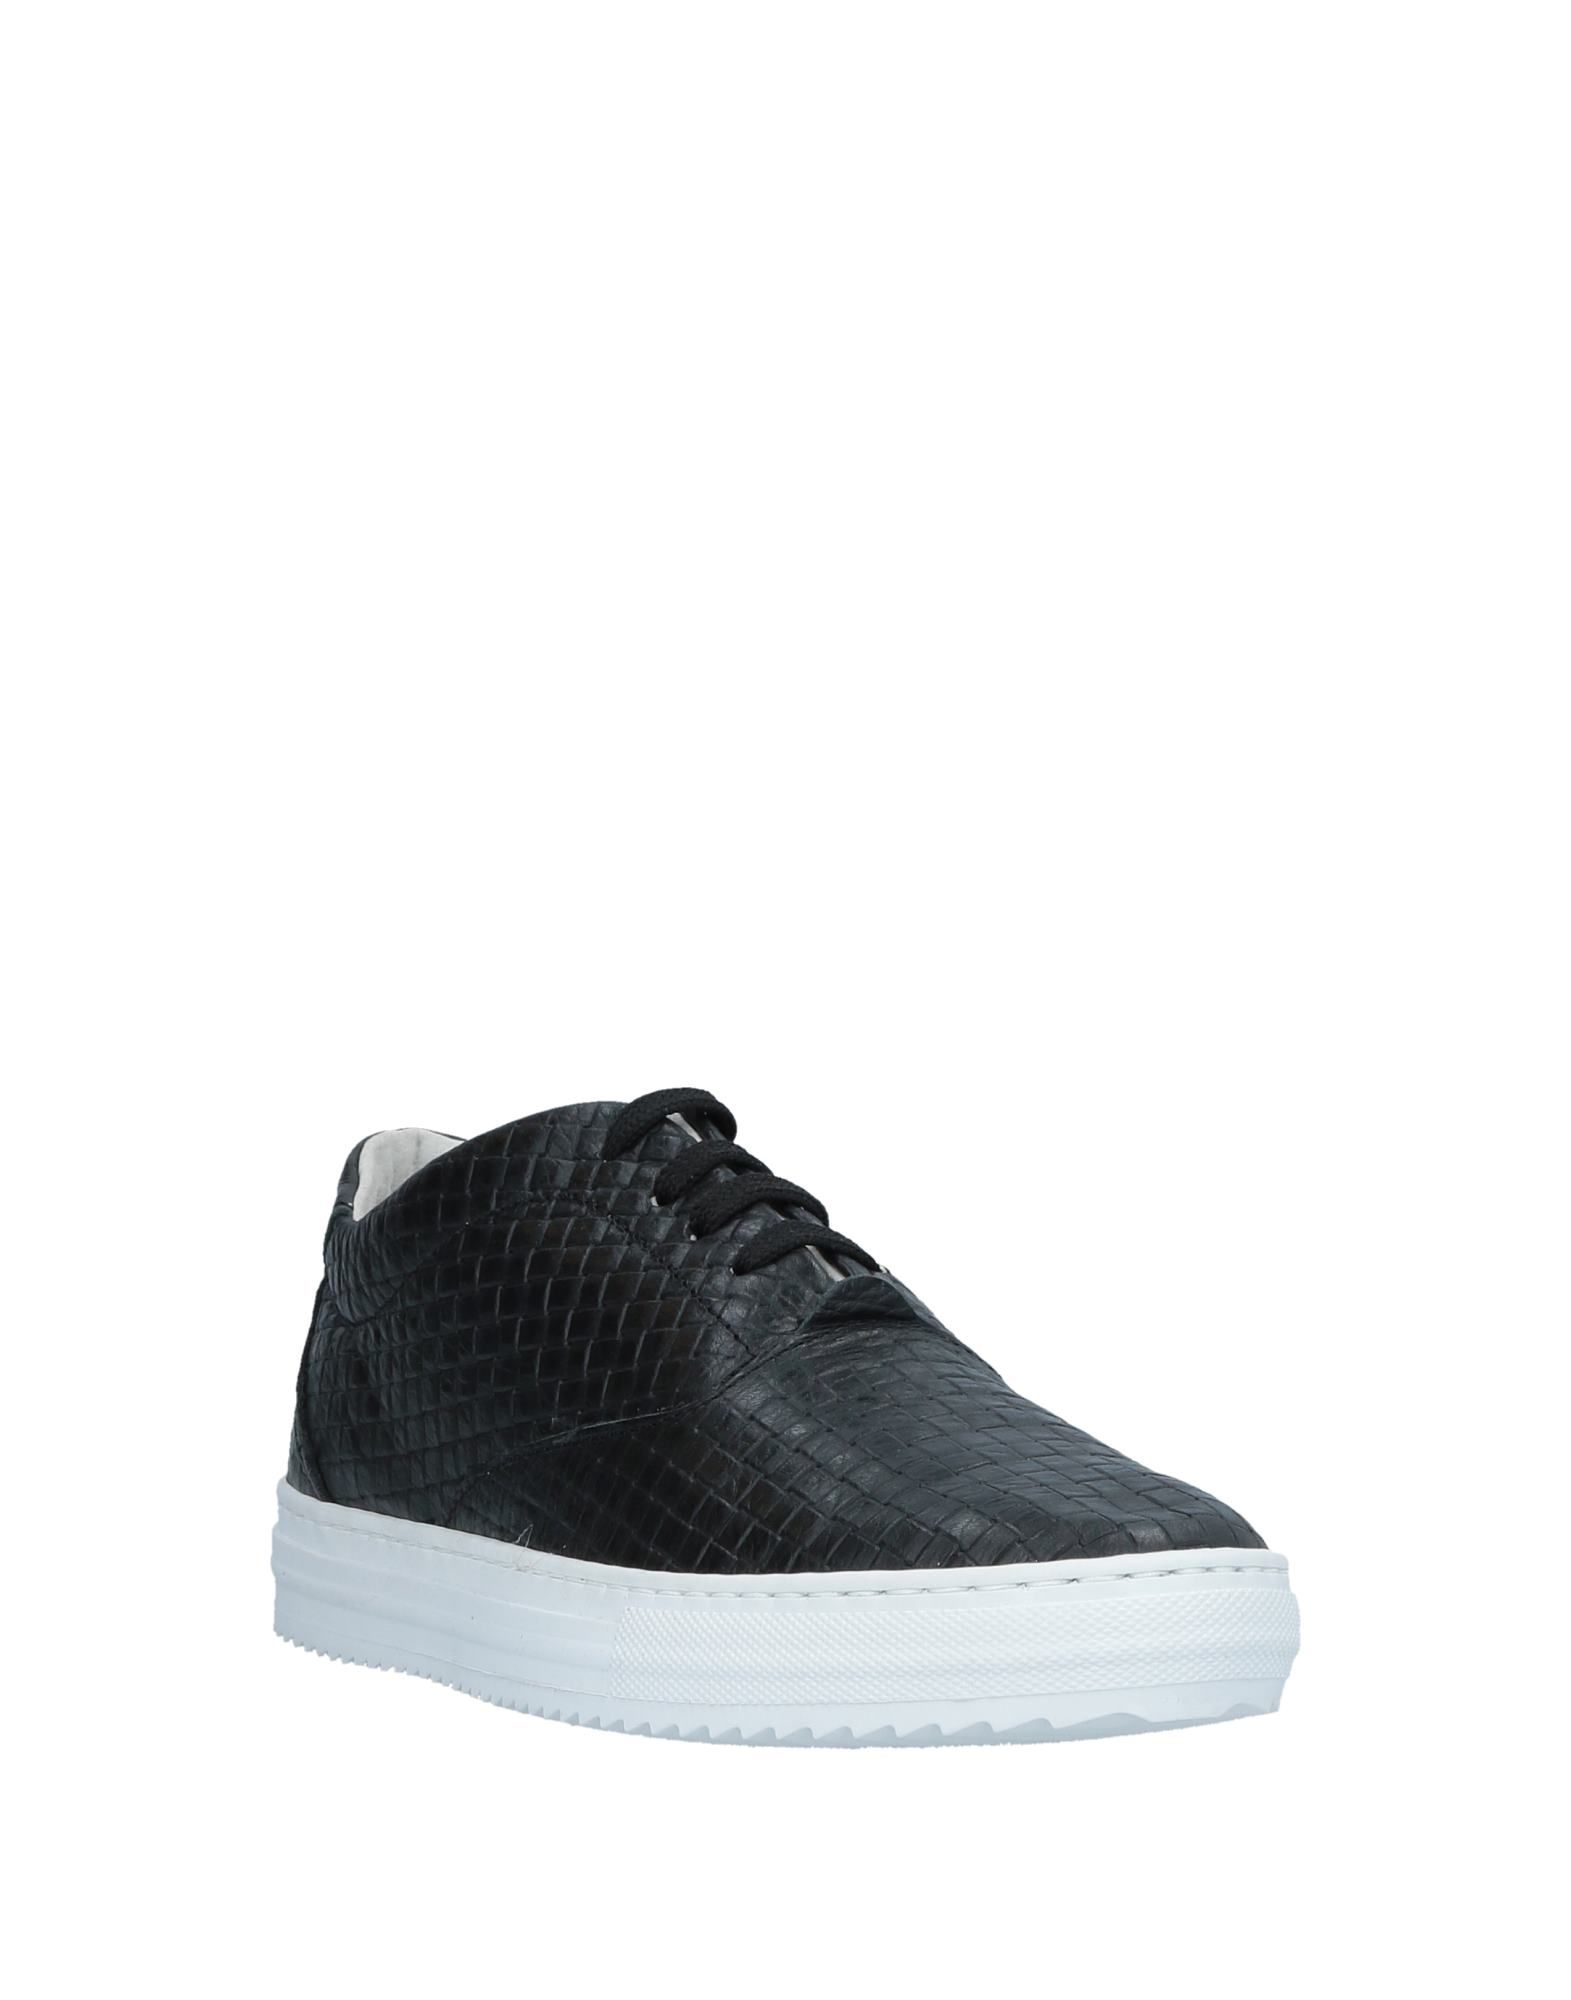 Fratelli Sneakers Circondato Sneakers Fratelli Herren  11521058CN 299a2a